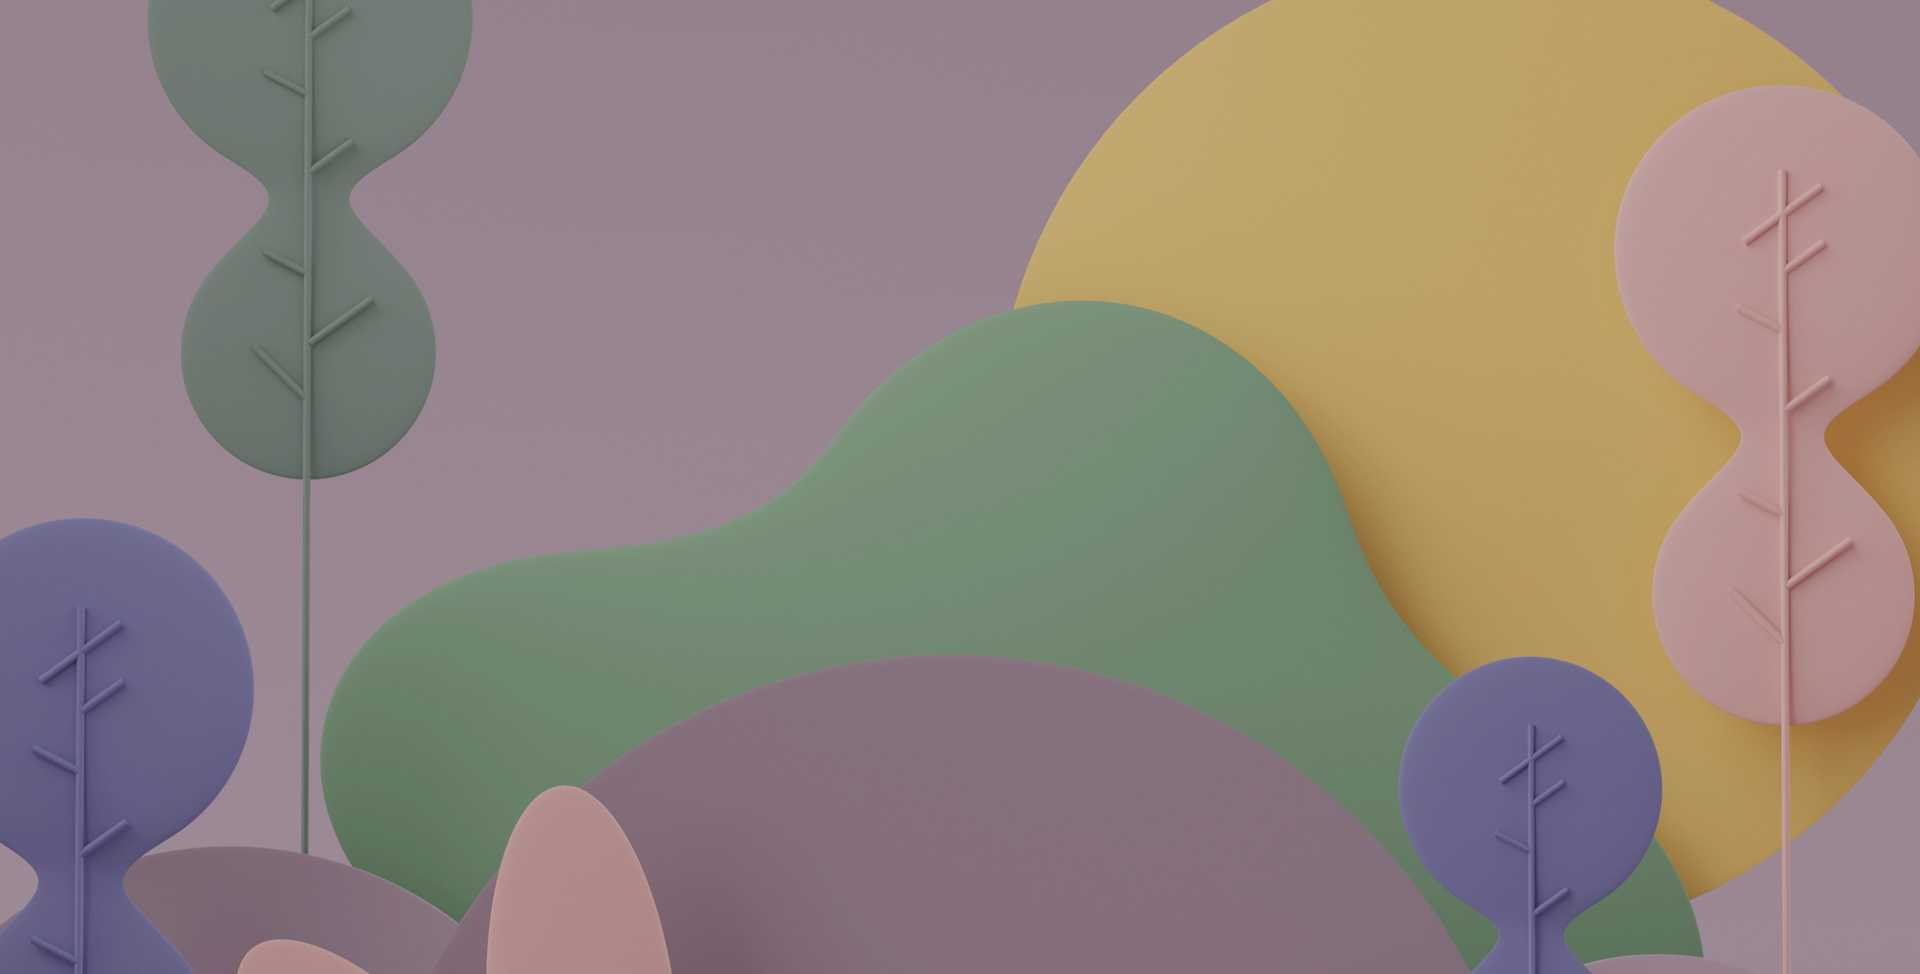 Abstract 3D rendering of green, yellow and purple shapes against a light purple background, representative of a forest